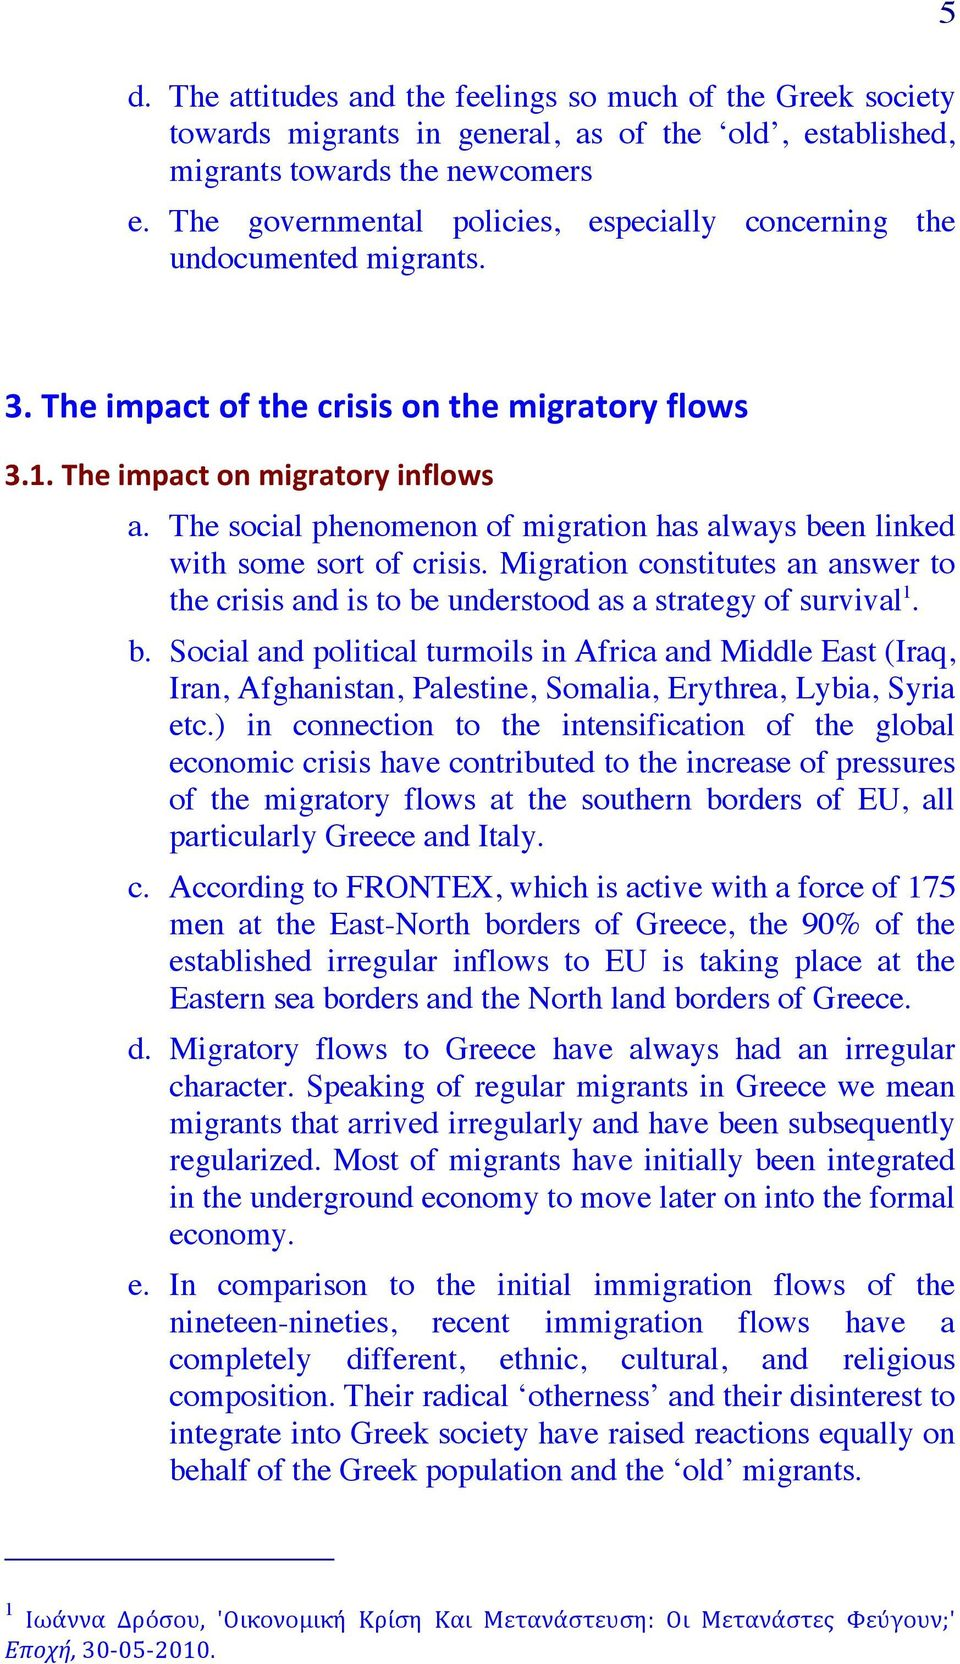 The social phenomenon of migration has always been linked with some sort of crisis. Migration constitutes an answer to the crisis and is to be understood as a strategy of survival 1. b. Social and political turmoils in Africa and Middle East (Iraq, Iran, Afghanistan, Palestine, Somalia, Erythrea, Lybia, Syria etc.